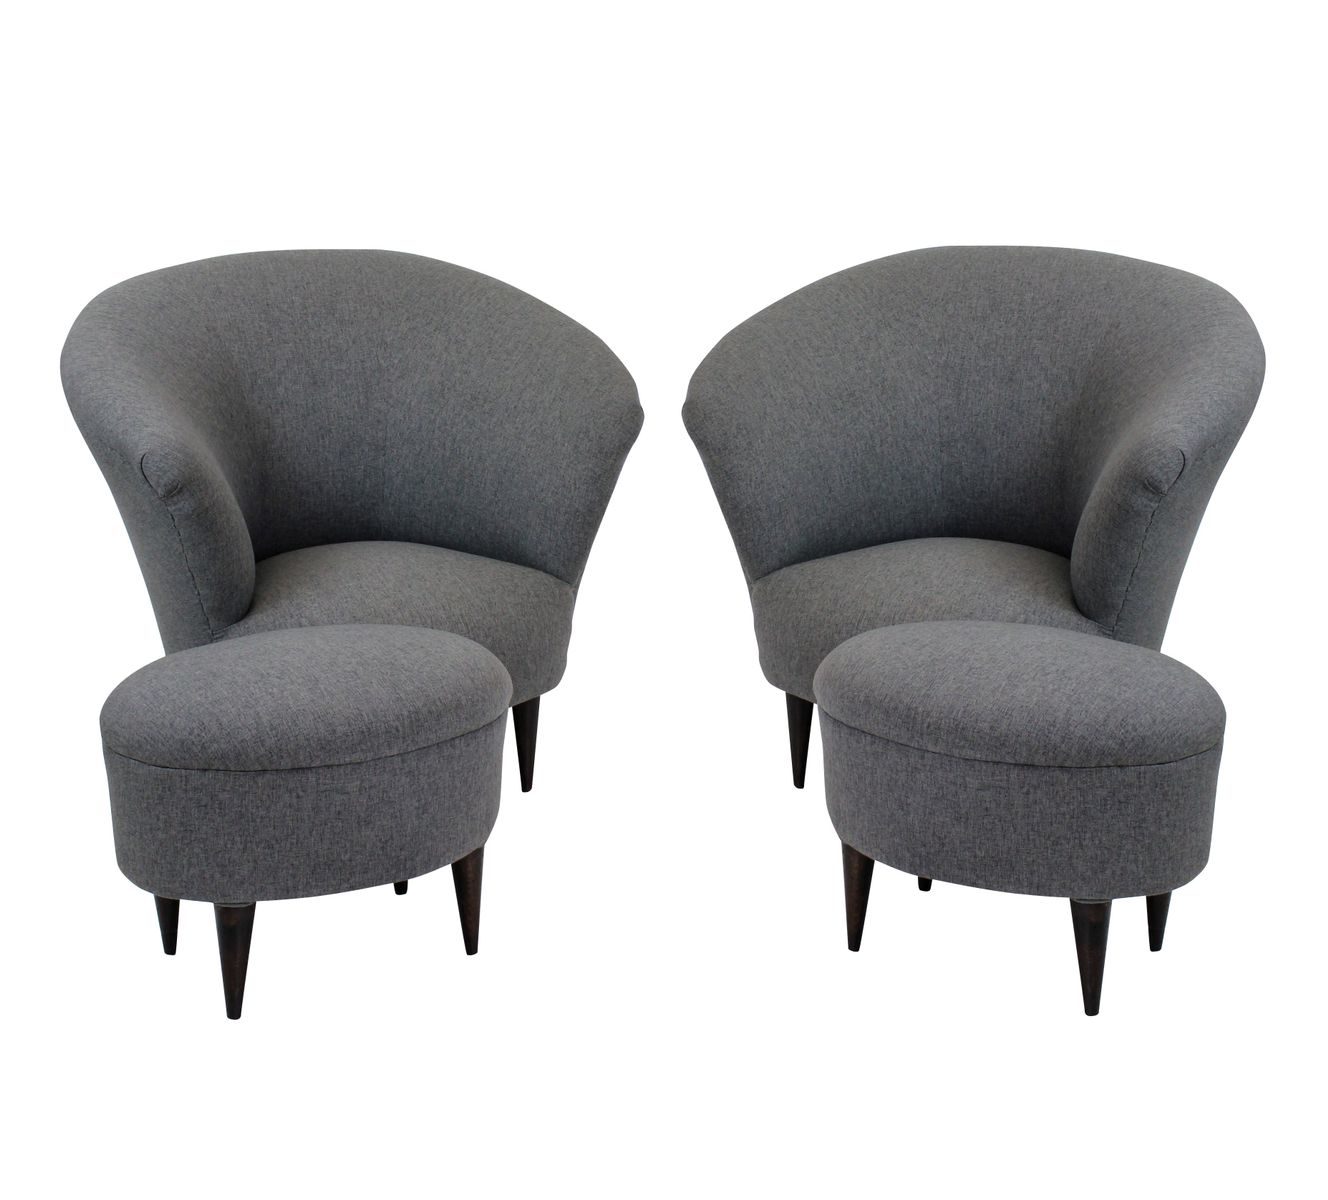 Armchairs U0026 Matching Foot Stools By Ico Parisi, Set Of 2 For Sale At Pamono